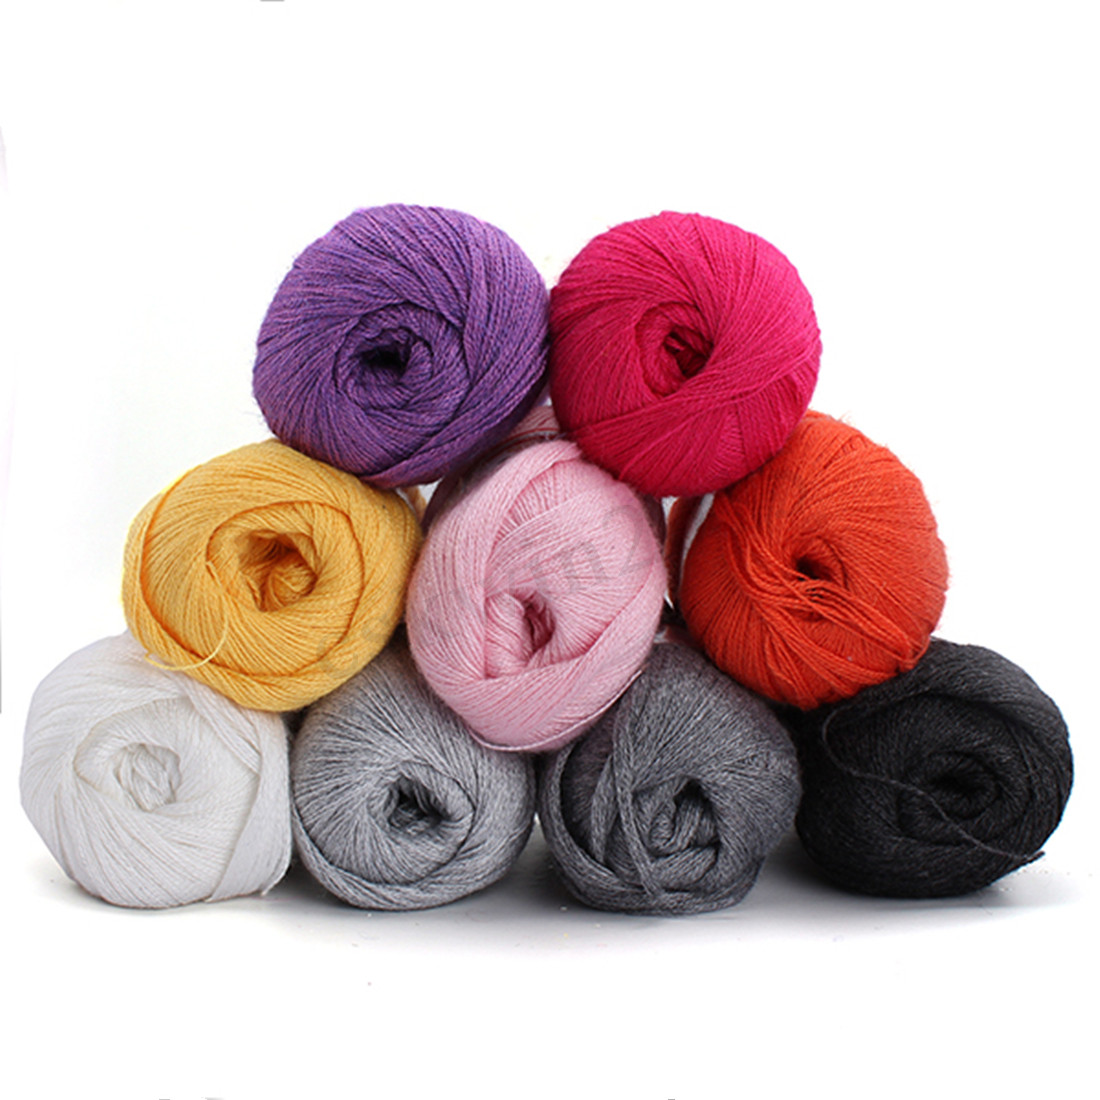 Cashmere Skein Weaving Wool Knitting Yarn Crocheting